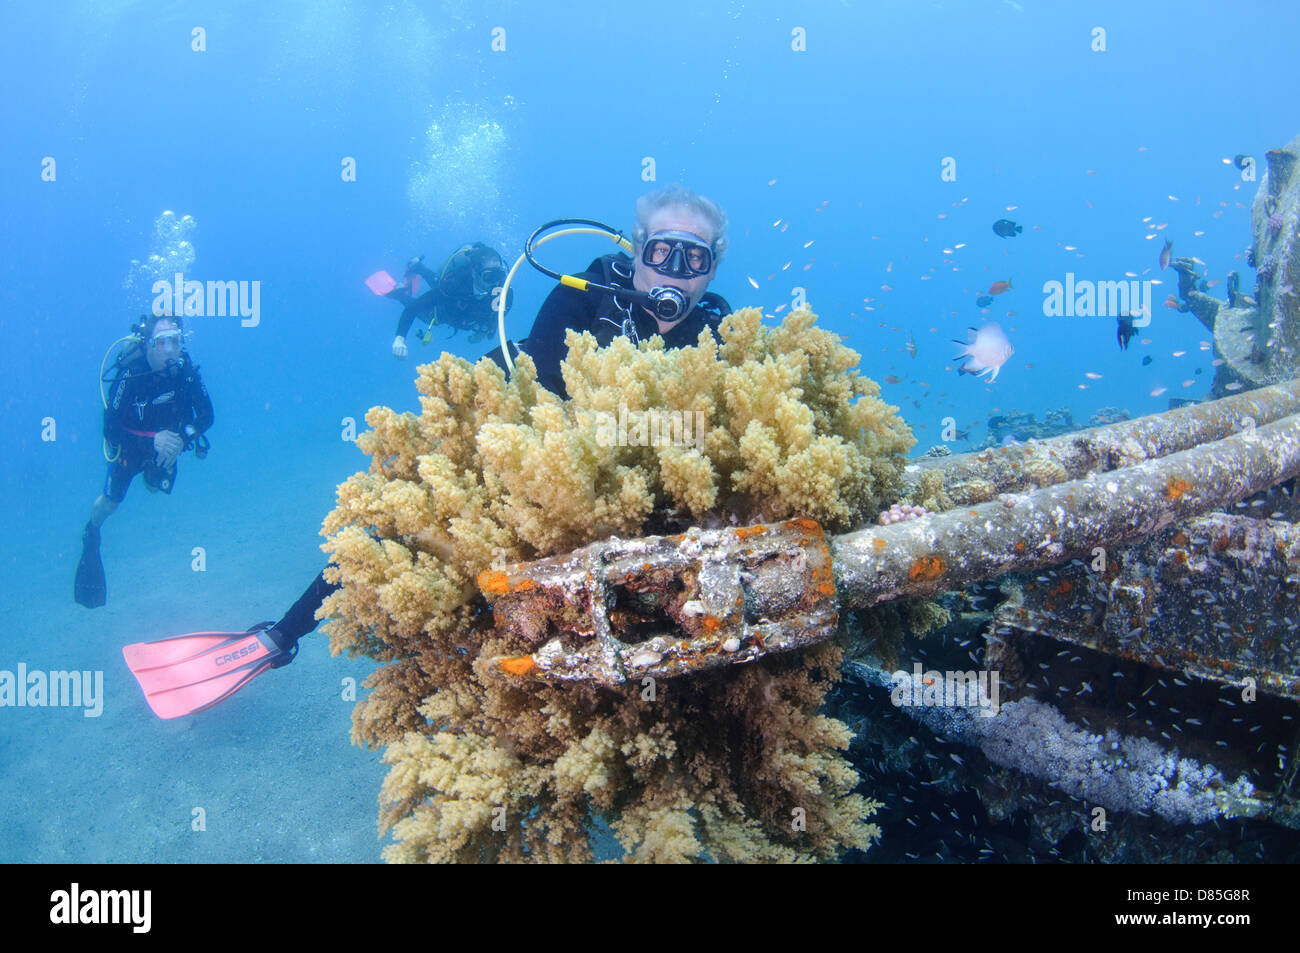 Divers at a sunken tank off the cost of Aqaba, Red Sea Jordan - Stock Image